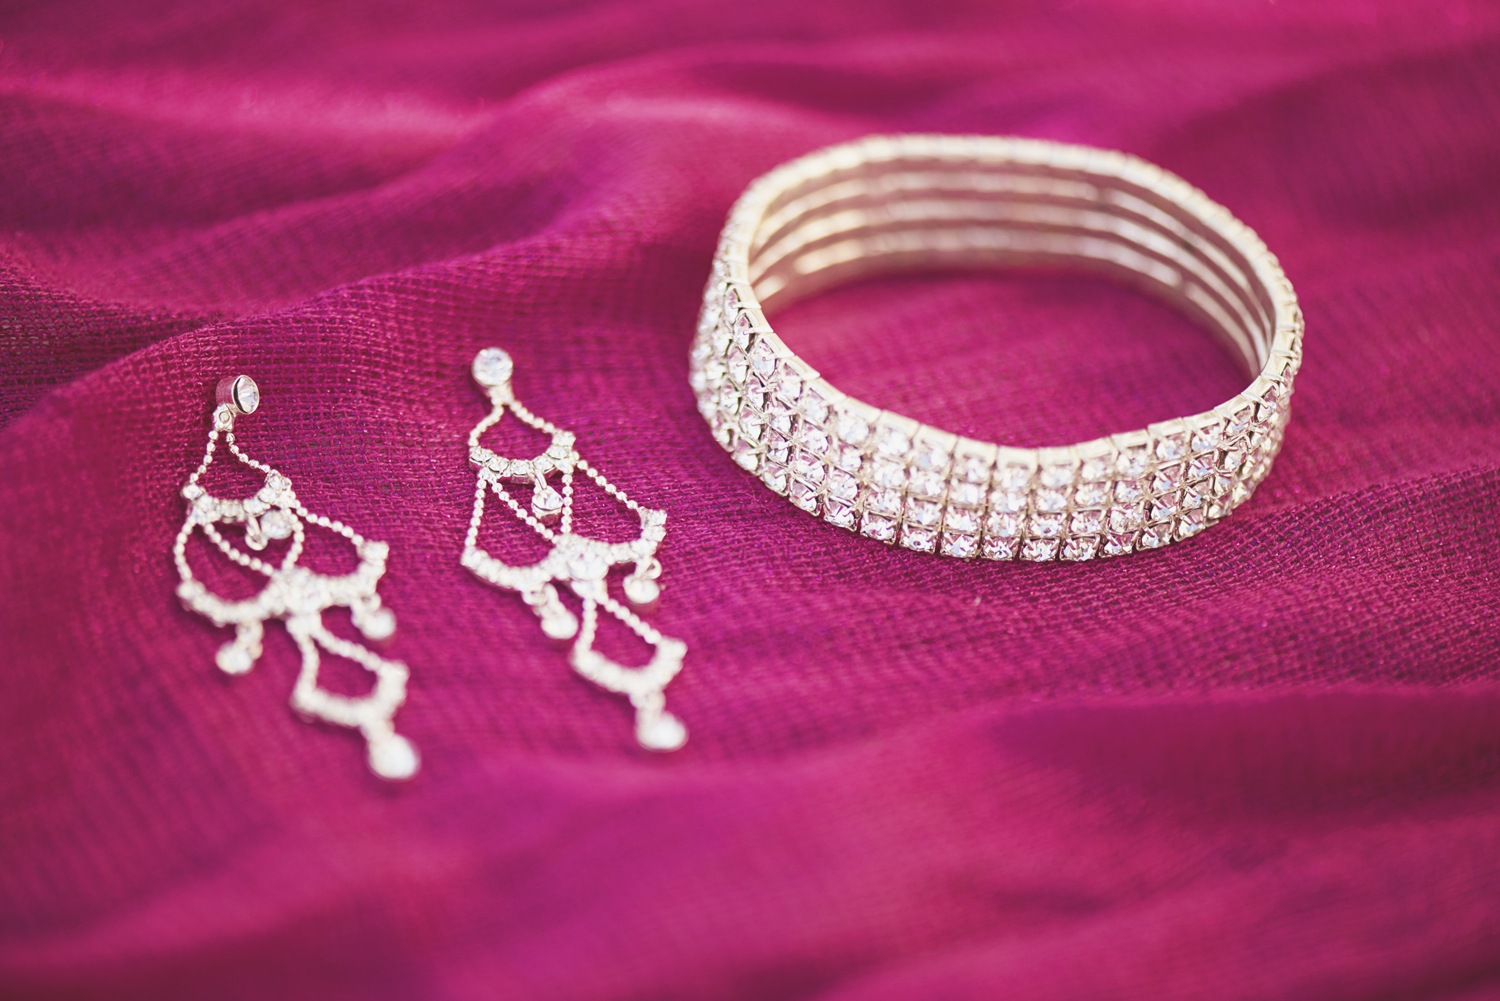 Pink and silver wedding details and jewelry